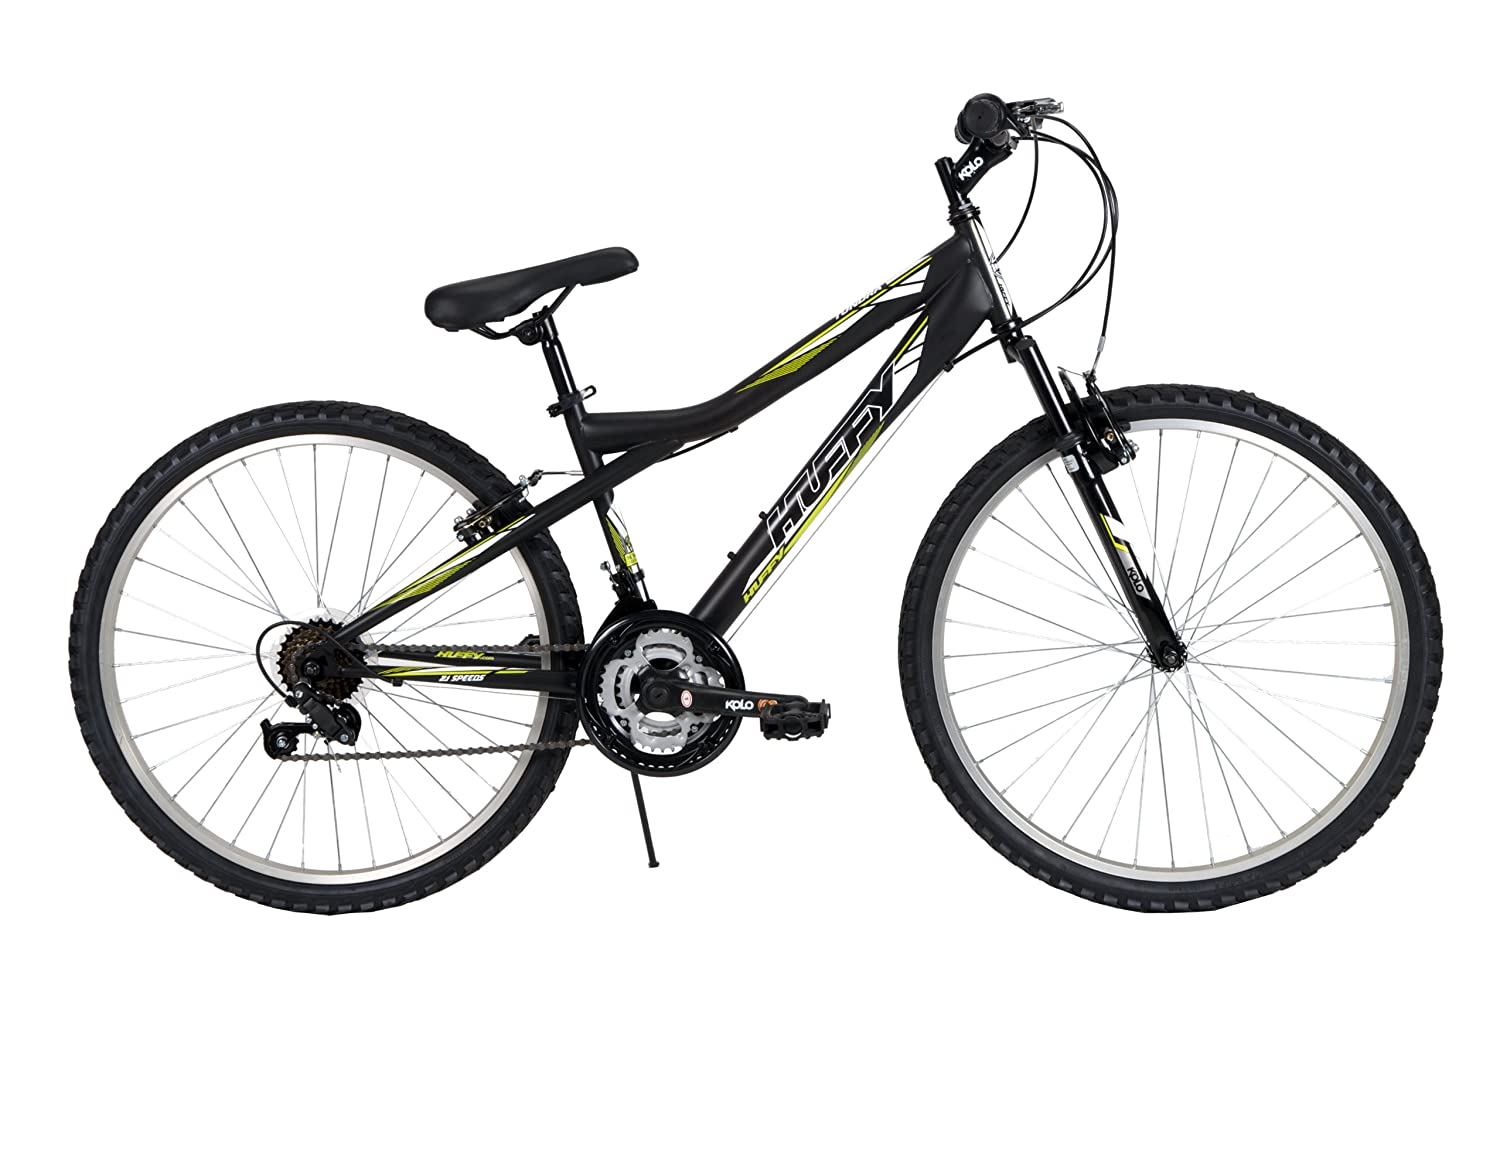 Huffy Bicycle Company Men's 26344 Tundra Bike, Matte Black, 26-Inch review